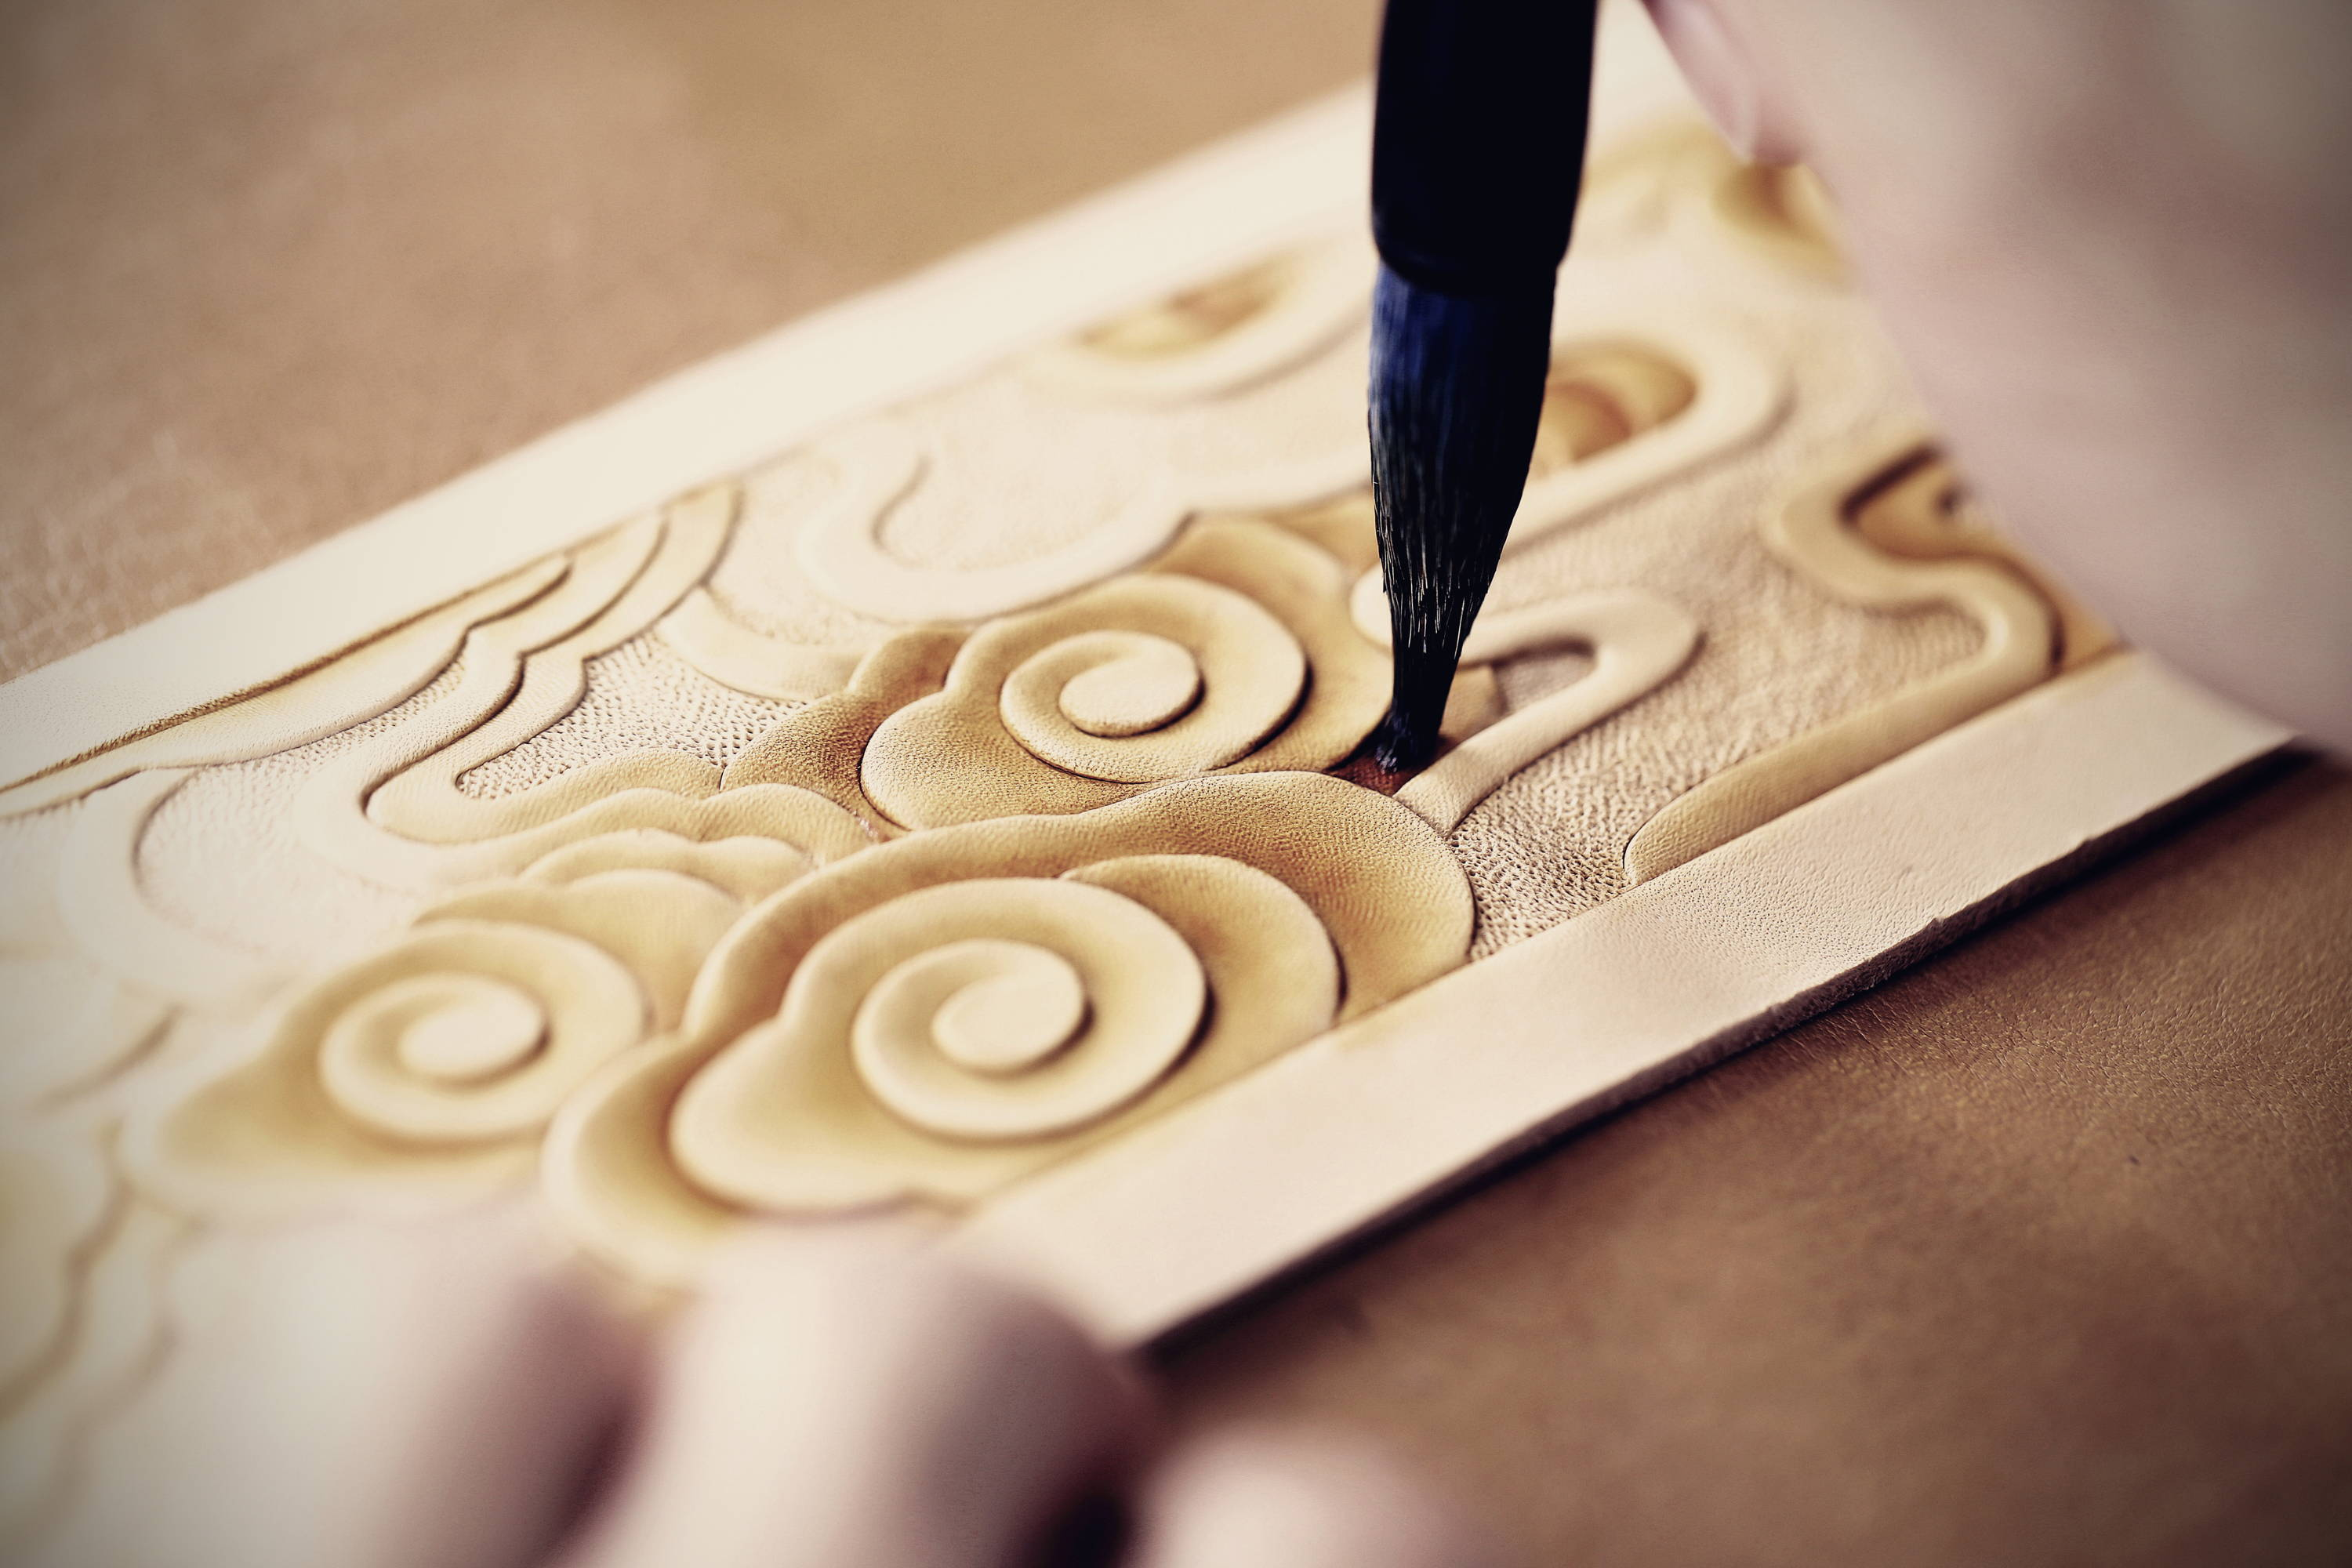 a craftsman is hand painting on the leather